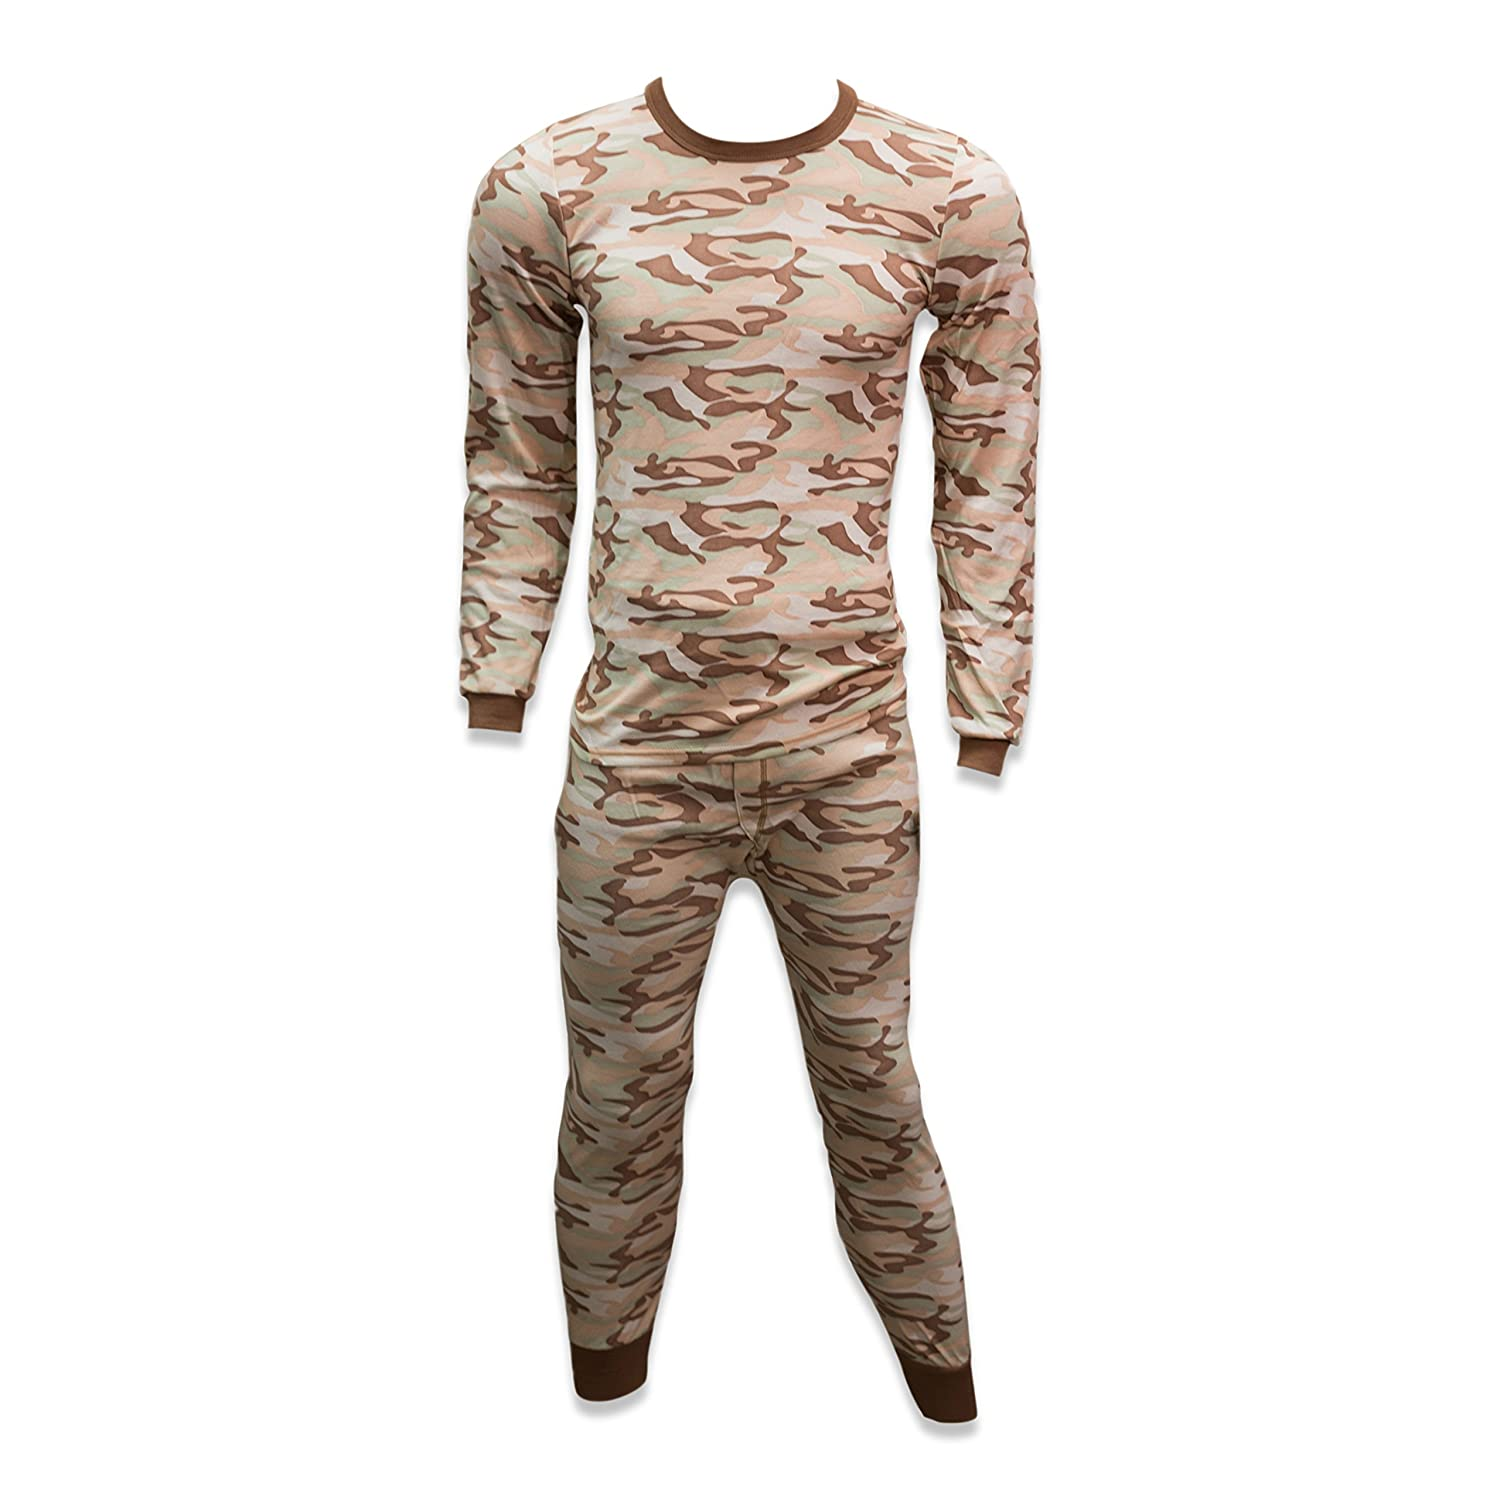 Andrew Scott Mens Fleece Lined Base Layer Long Sleeve Long Pant Thermal Underwear Set CAMOSAND) ASM473X3 /77102C